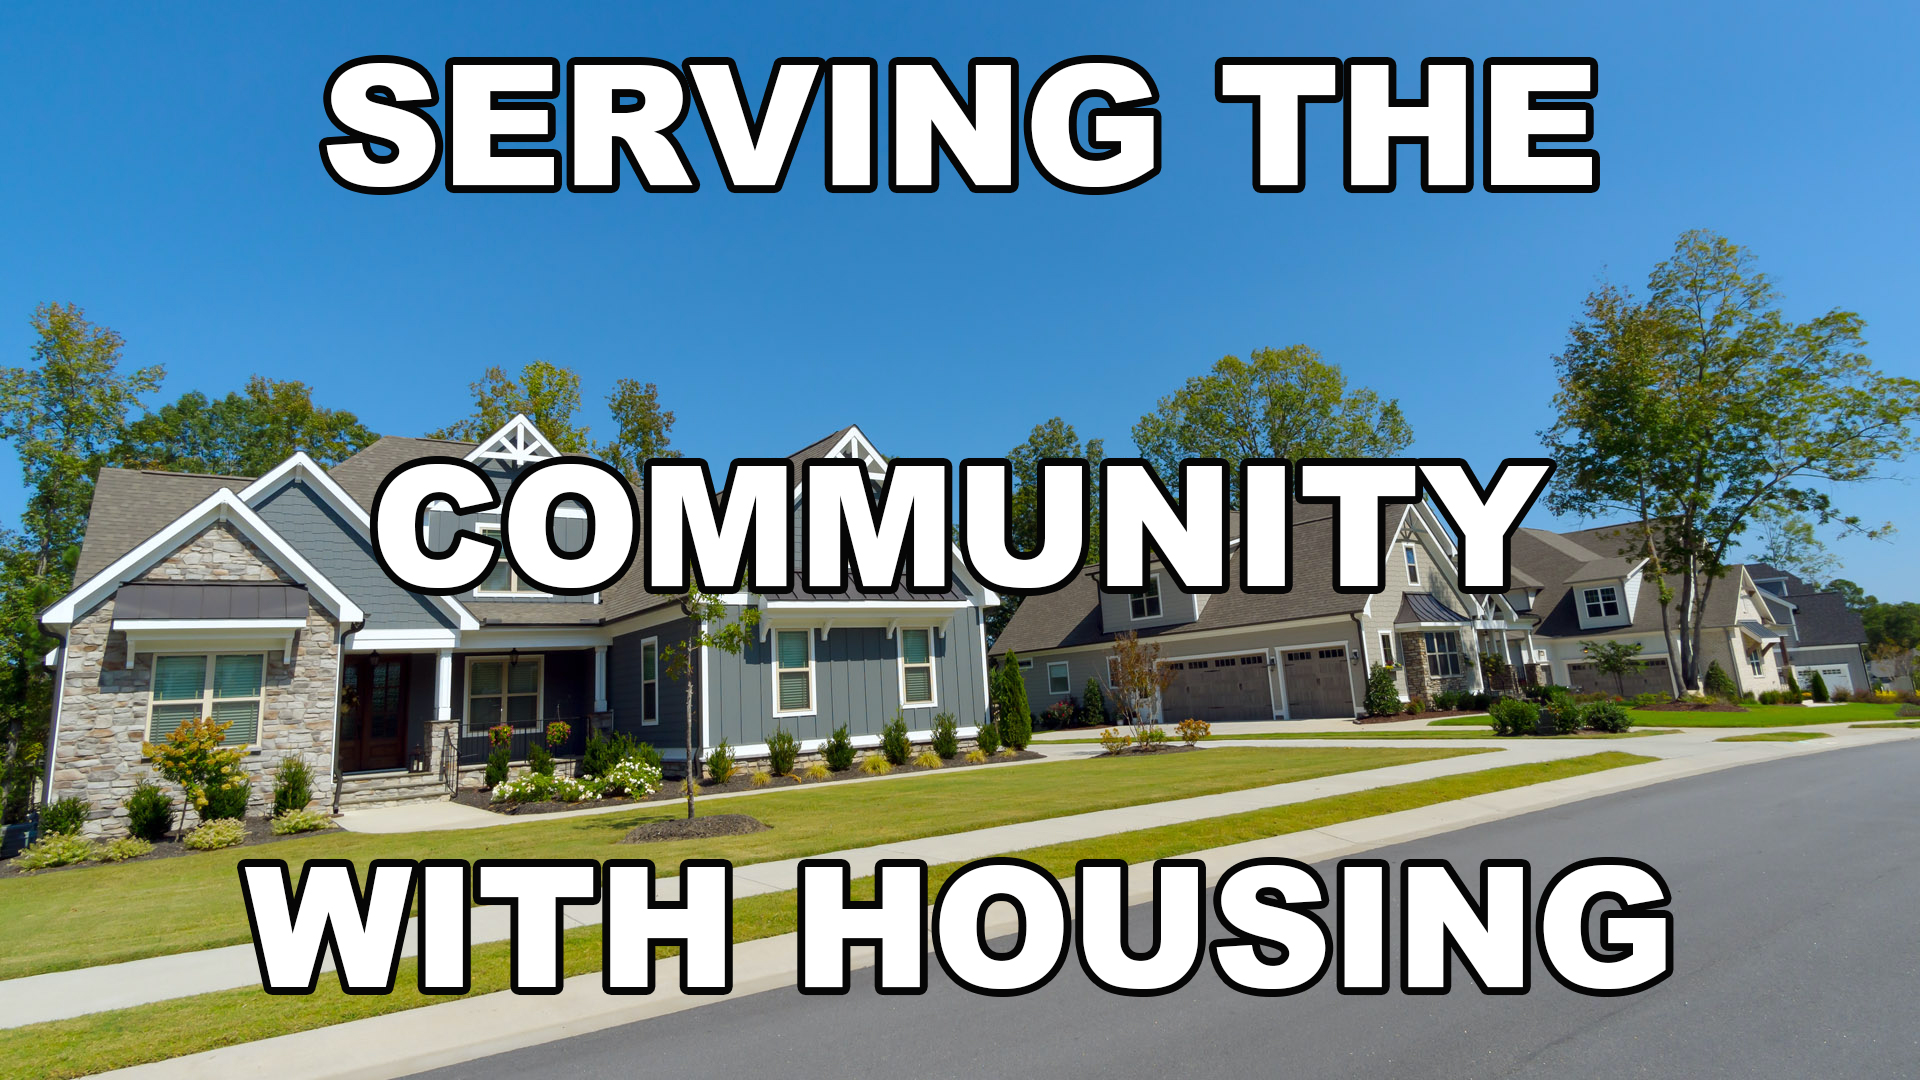 179. Serving The Community With Housing